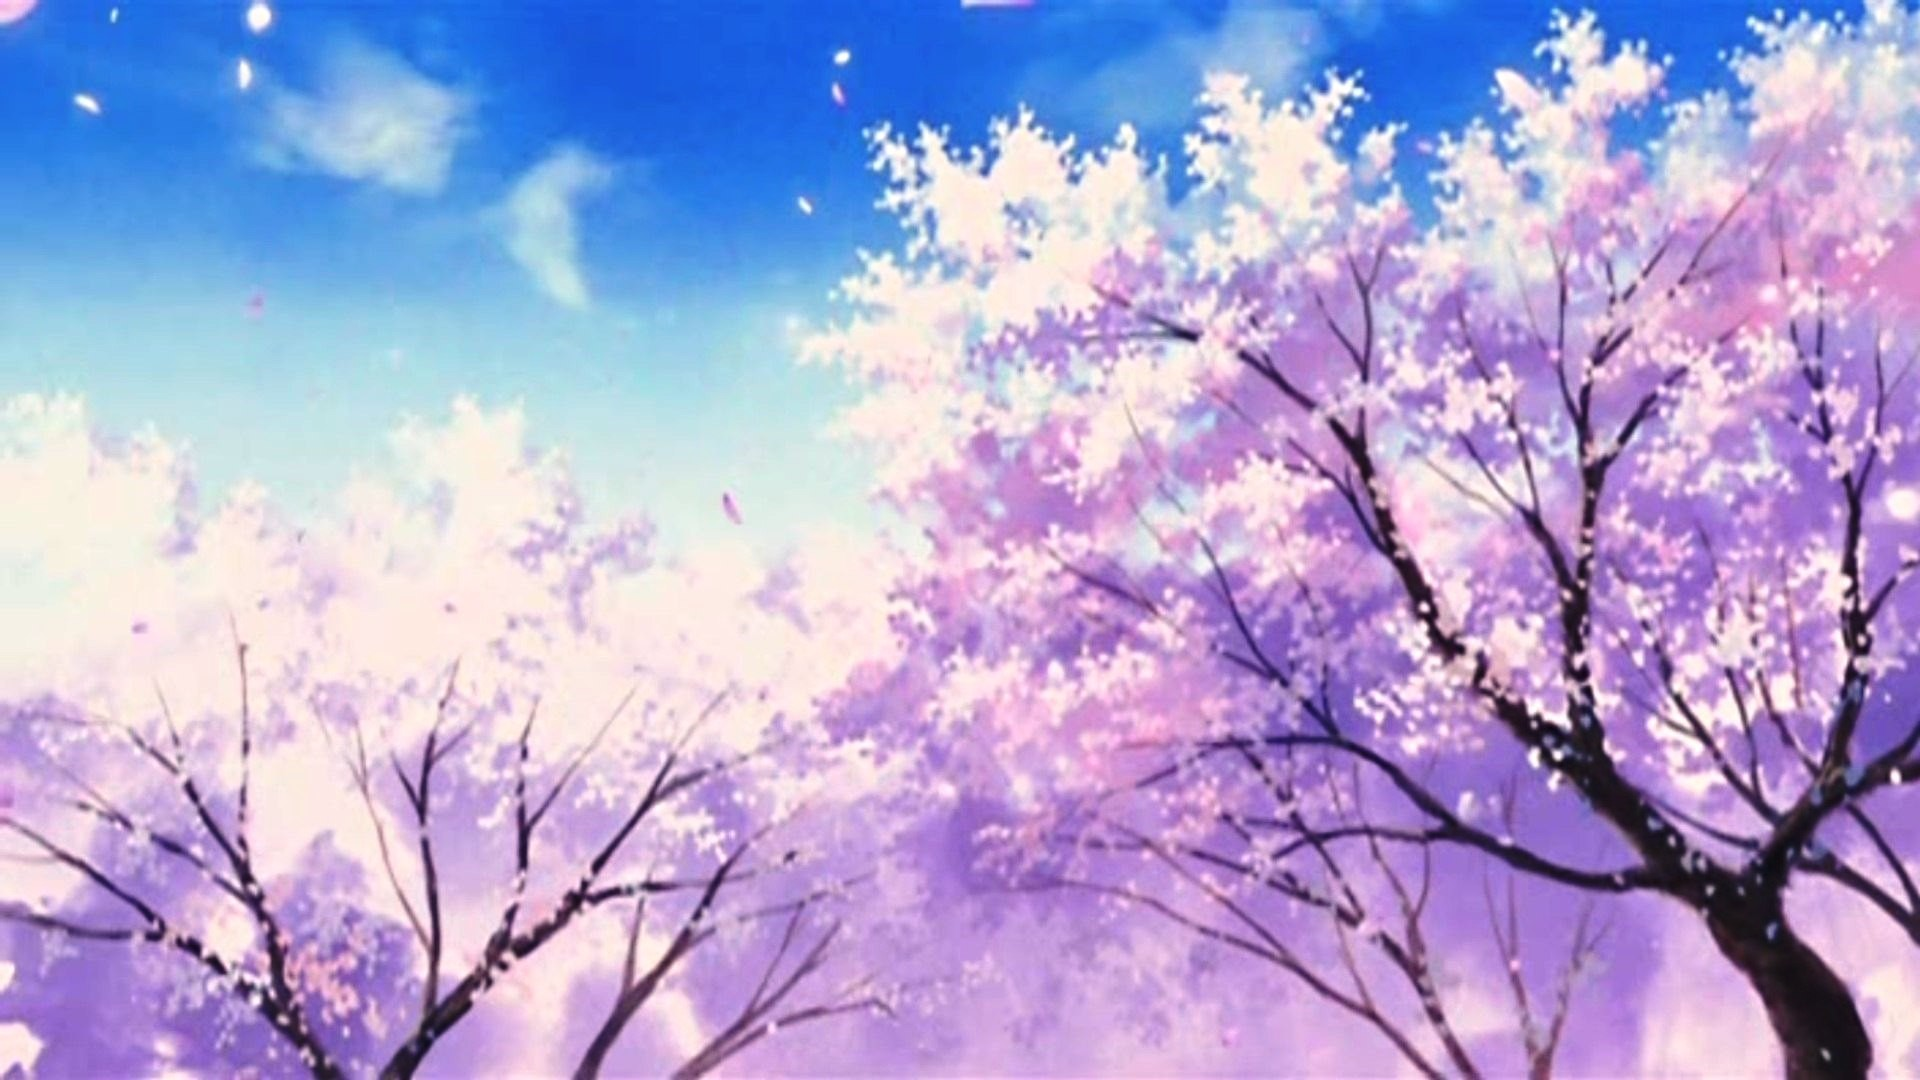 Anime Nature Wallpaper (77+ images)